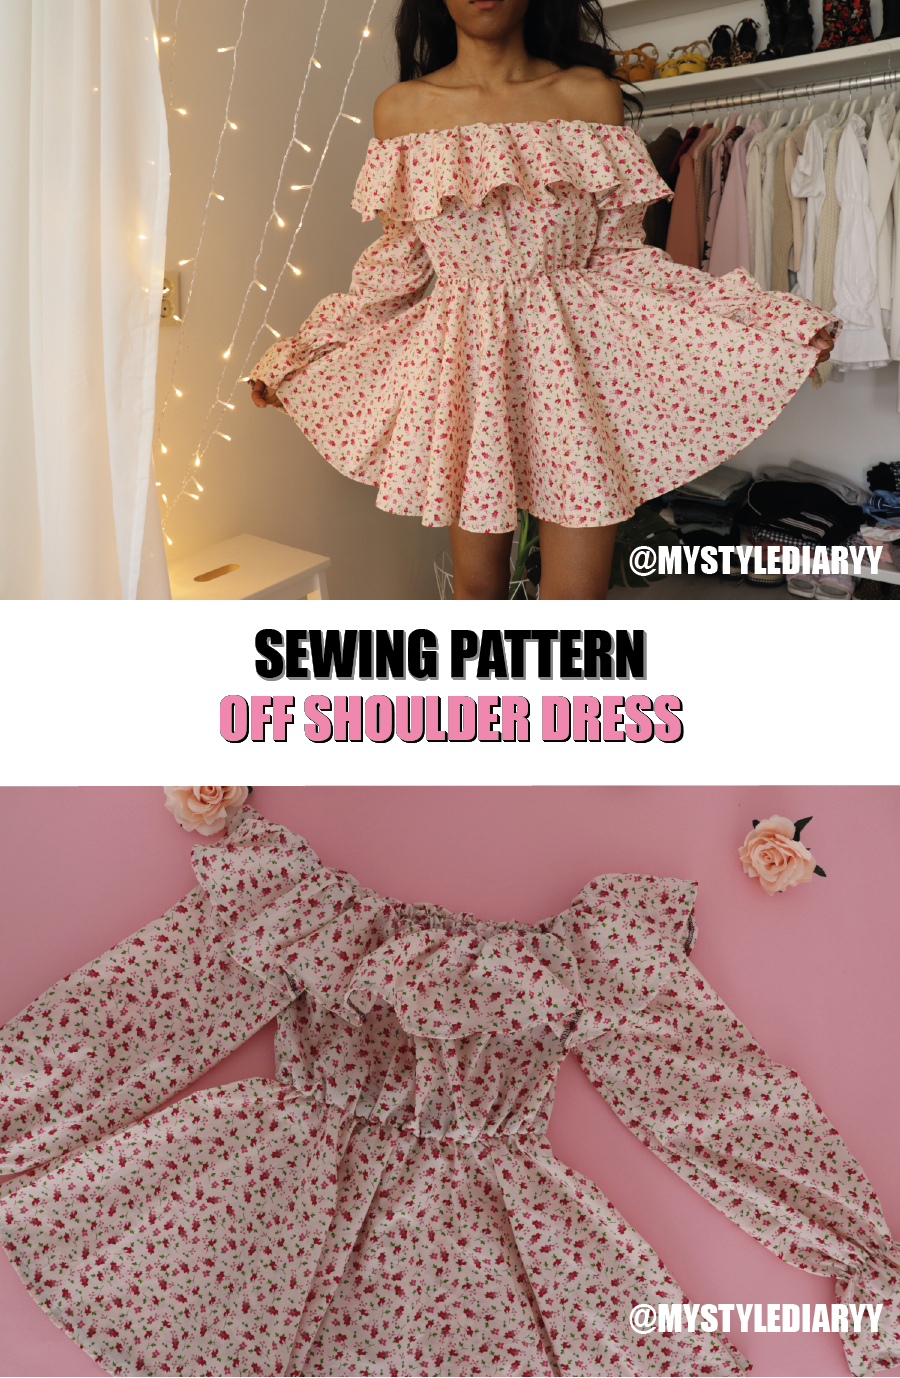 Off The Shoulder Dress Pattern For Women Skater Dress With Ruffle Sleeves And Neckline Instant Download Pdf Sewing Pattern Dress Sewing Patterns Dress Patterns Diy Dress Patterns [ 1378 x 900 Pixel ]